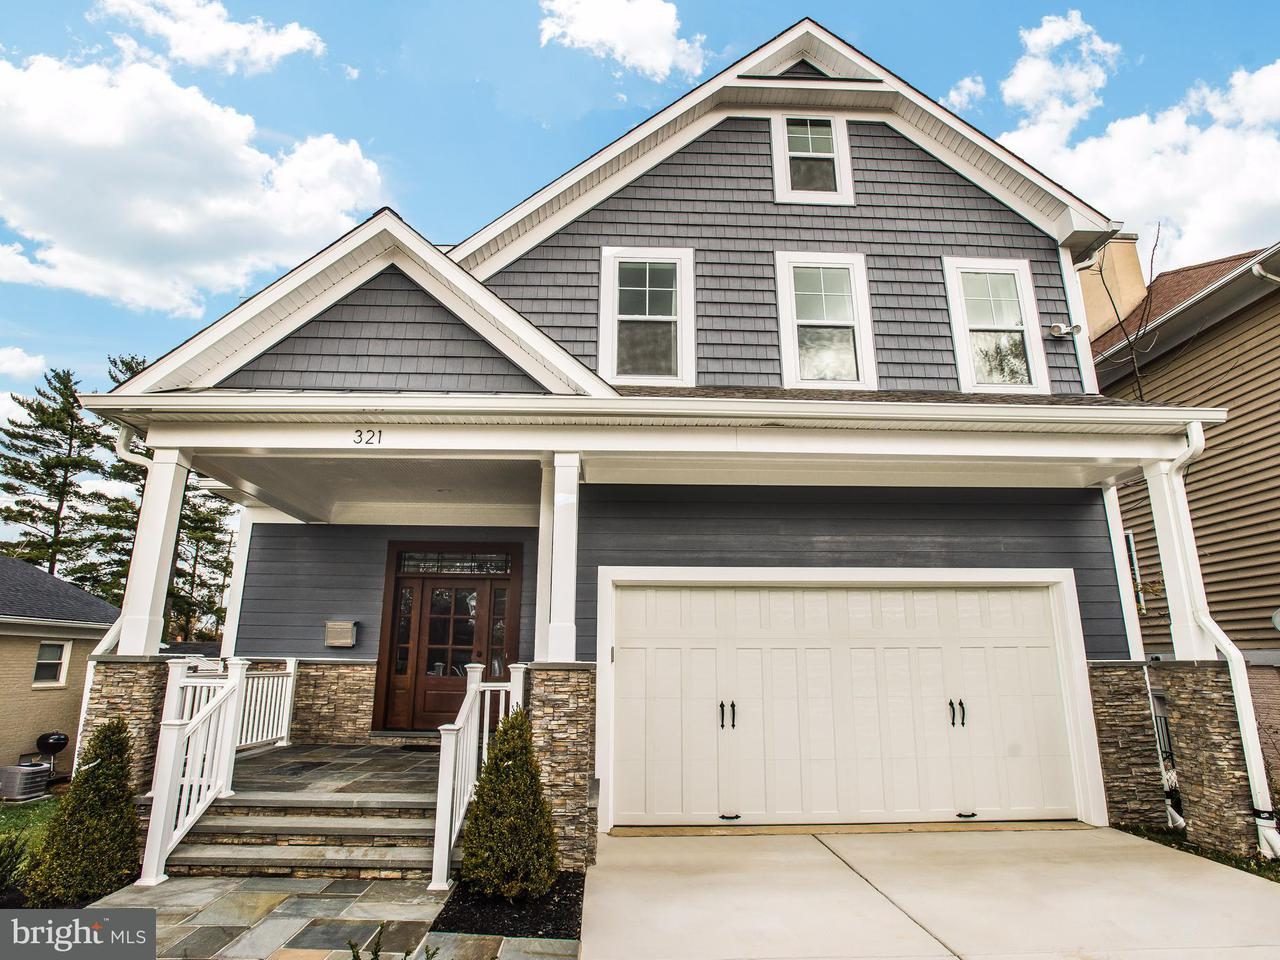 Single Family Home for Sale at 321 BEALL Avenue 321 BEALL Avenue Rockville, Maryland 20850 United States